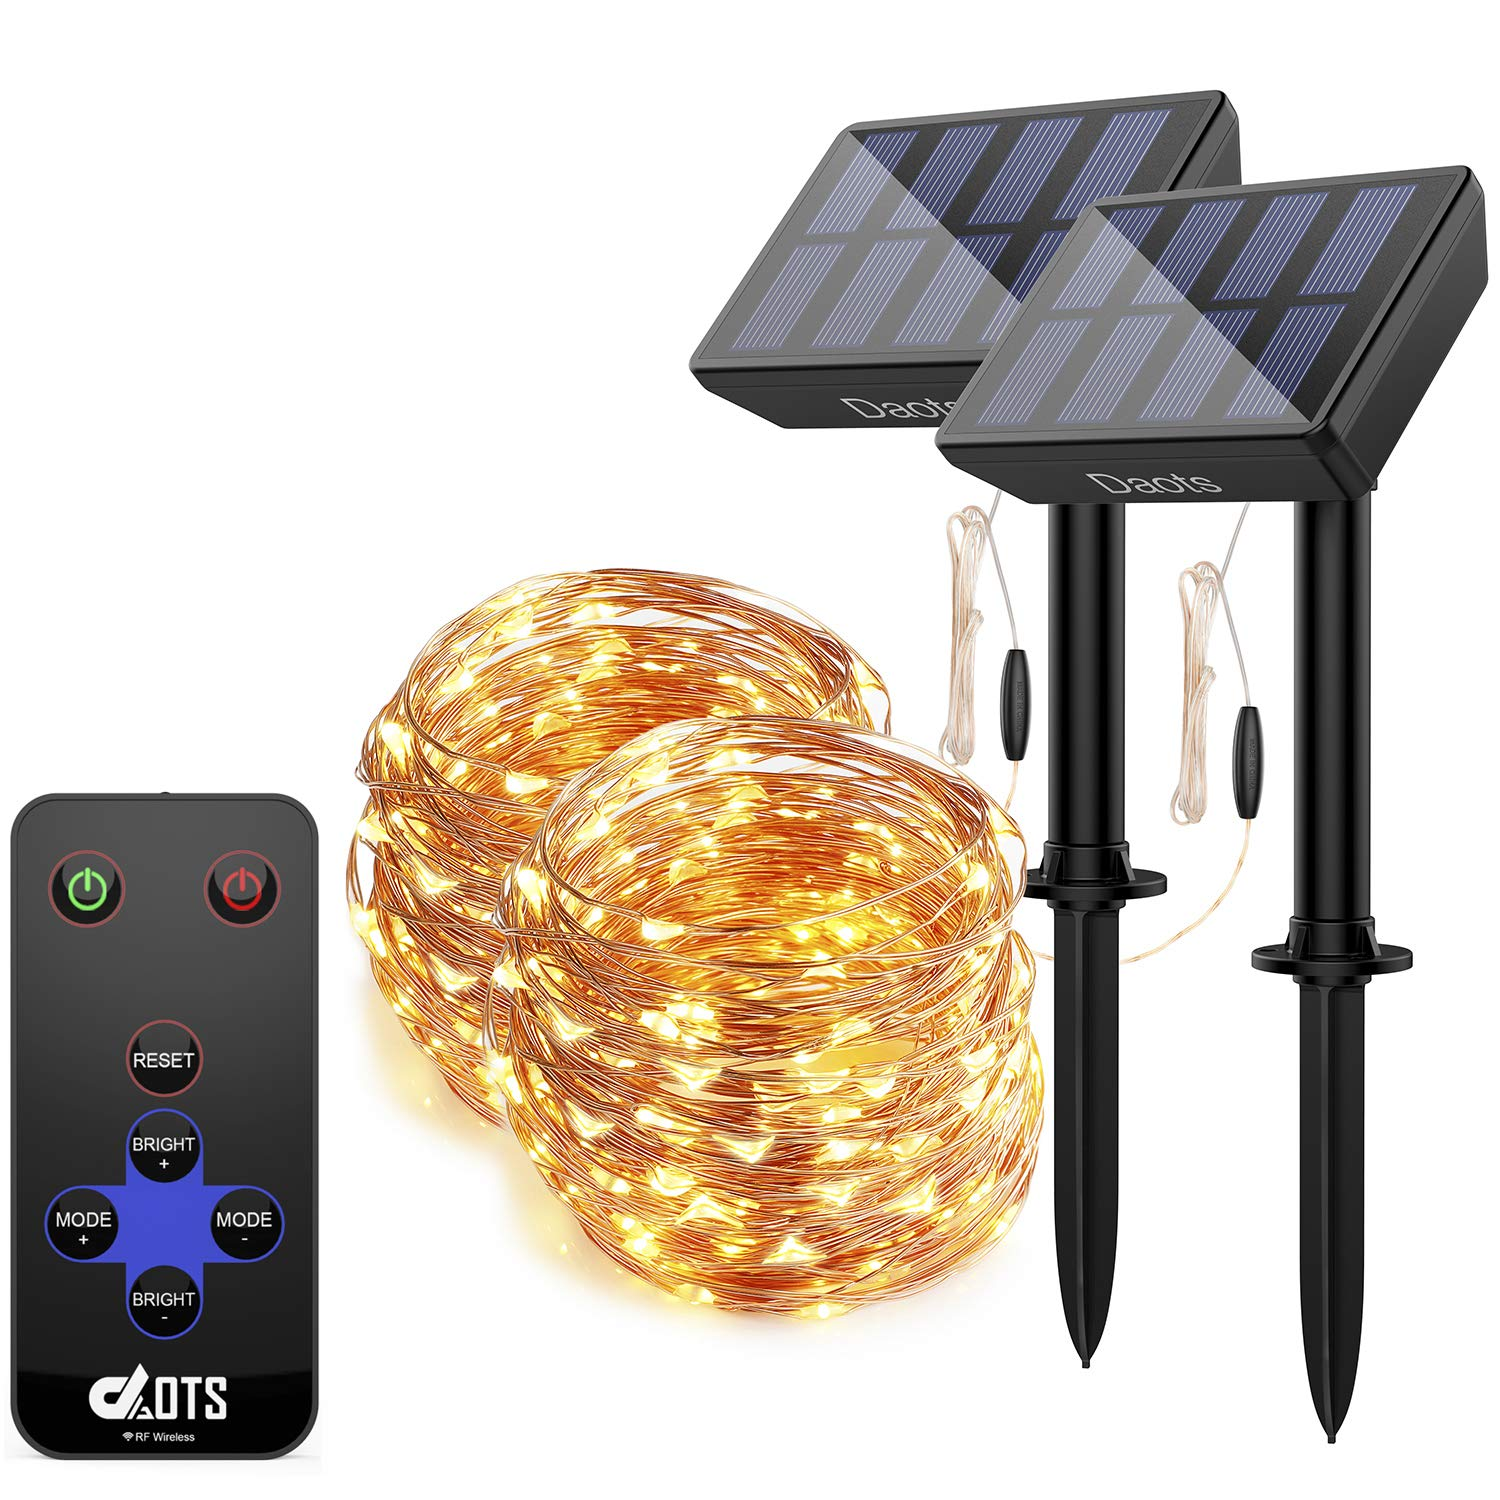 DAOTS Solar String Lights Outdoor Waterproof 100 LEDs Fairy Christmas Lights, Decorative Copper Wire String Lights Solar Powered with Remote 8 Modes for Garden Patio Tree (Warm White, 33ft) (2 Pack)